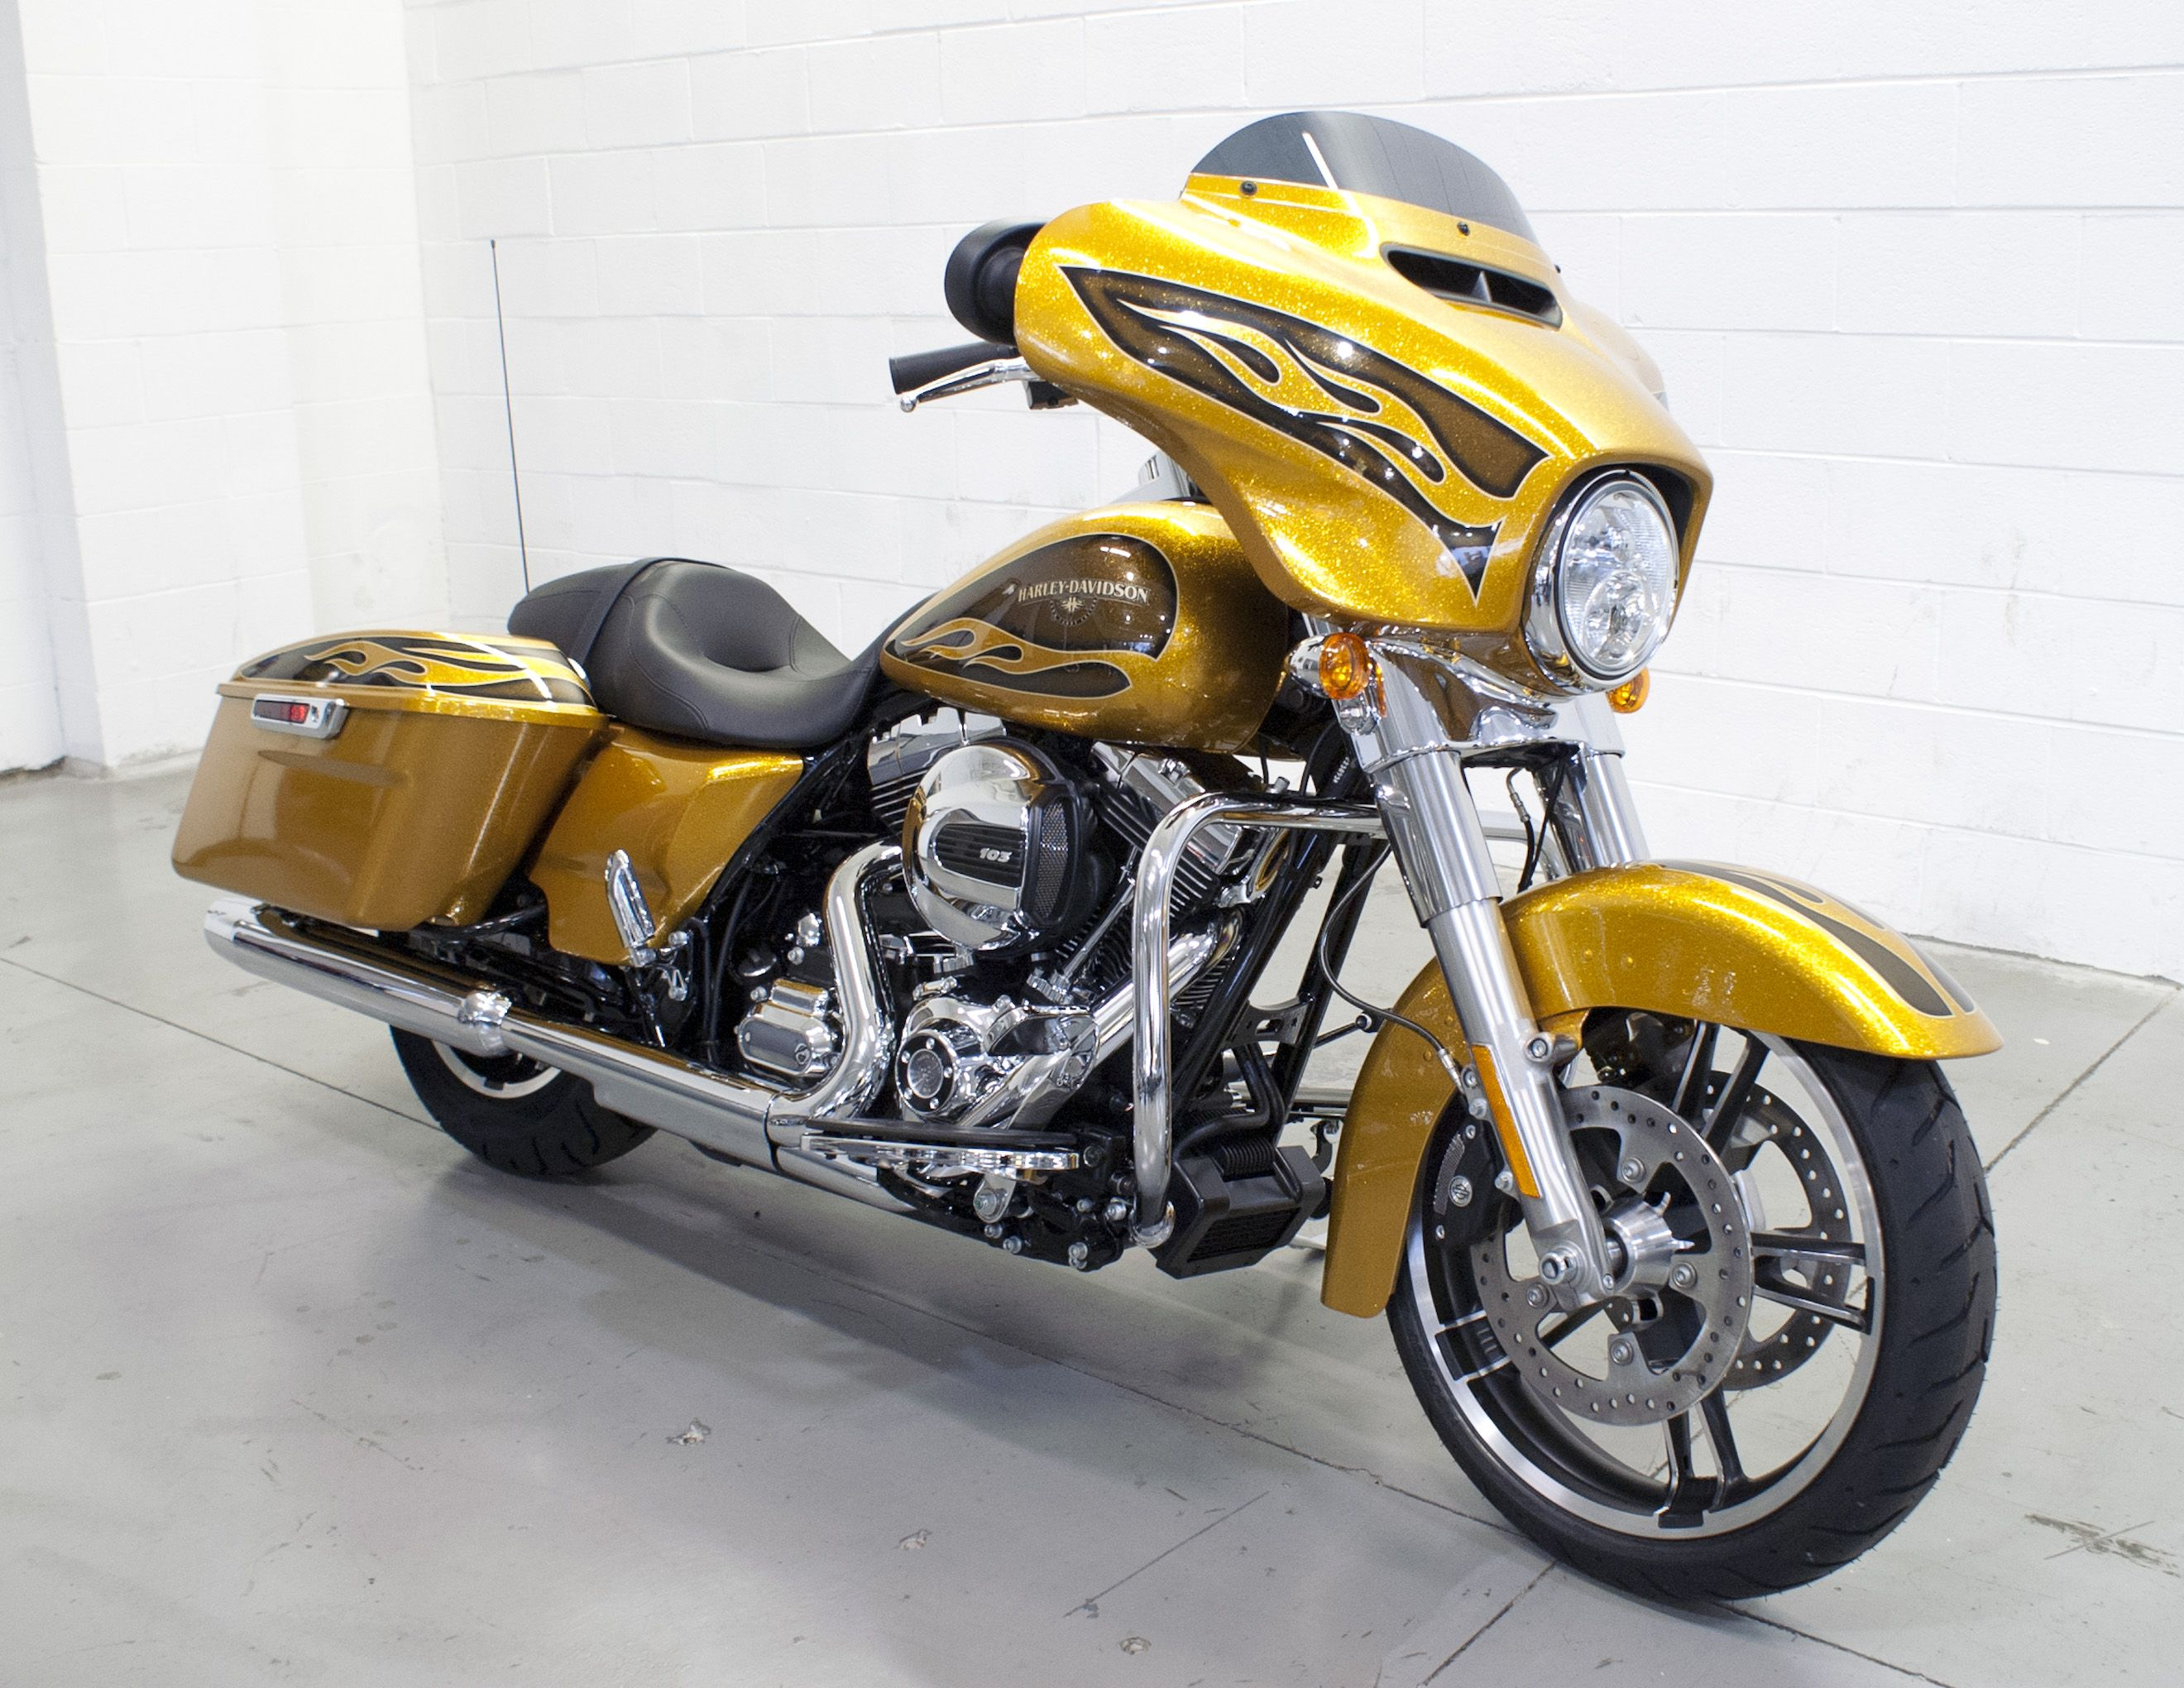 Harley davidson 2016 h d street glide special featured in hard candy gold flake